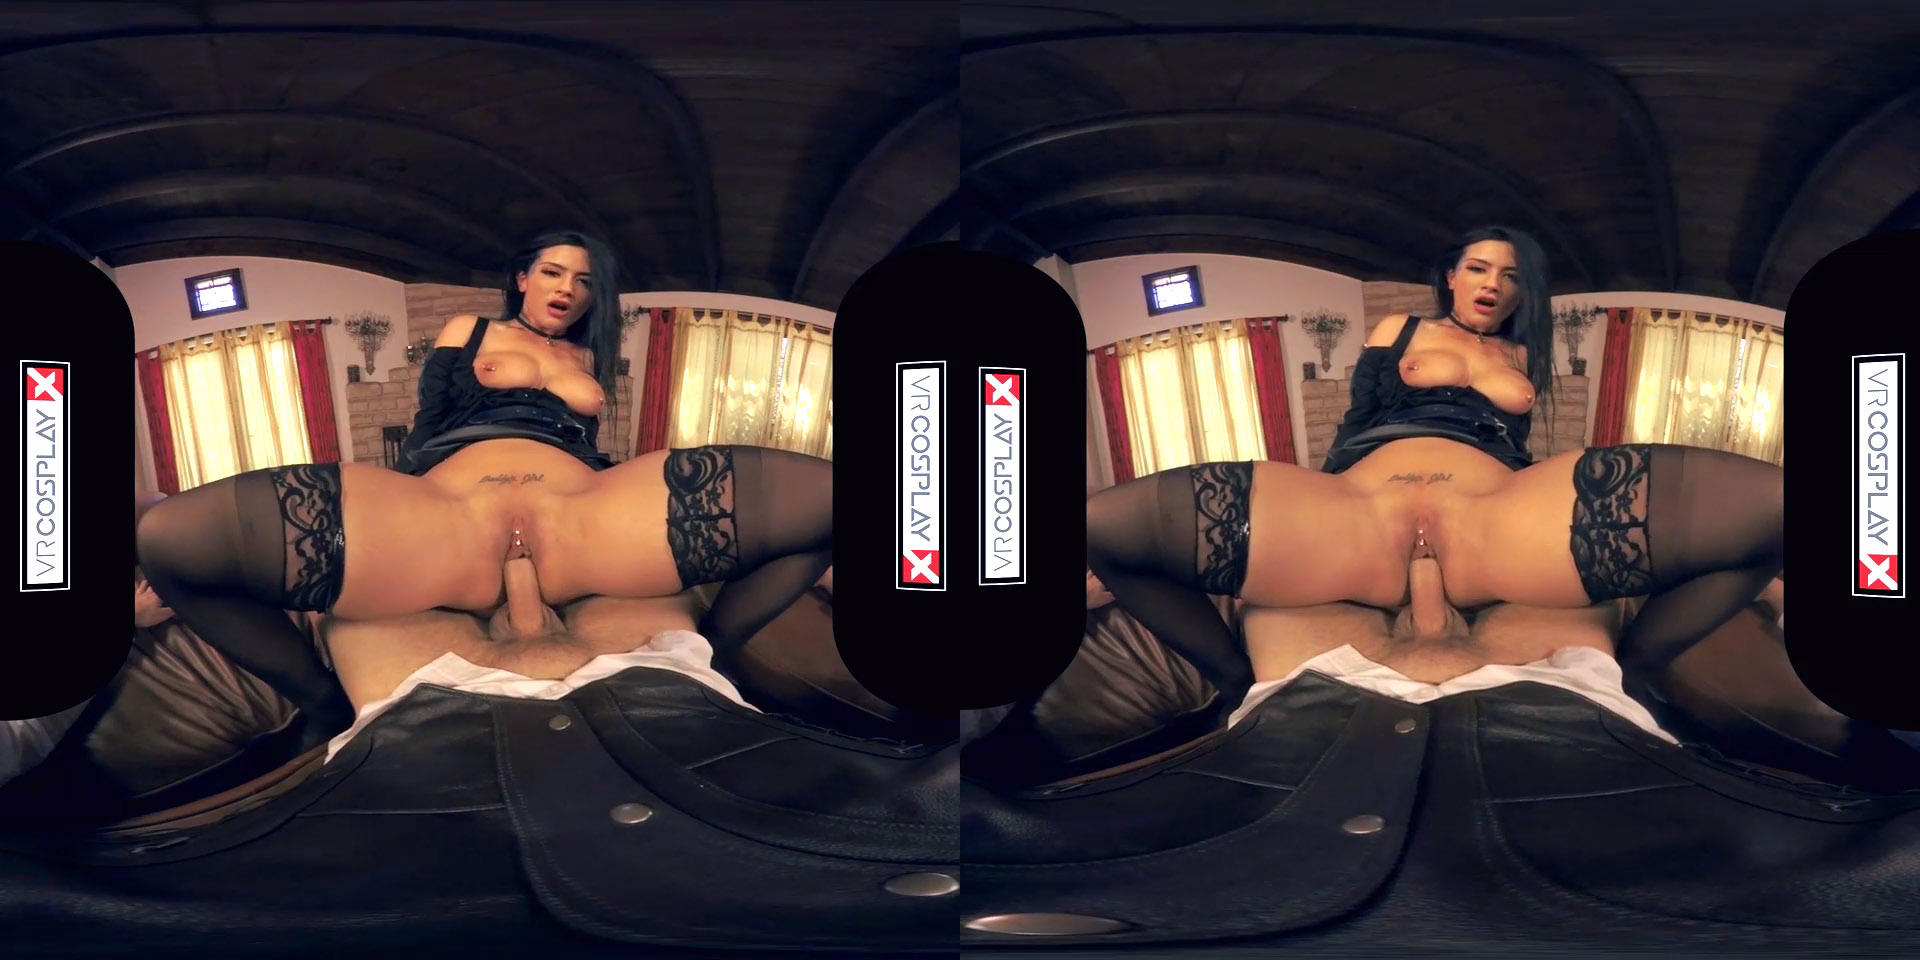 Vrcosplayx yen and triss enjoy lesbian session witcher xxx